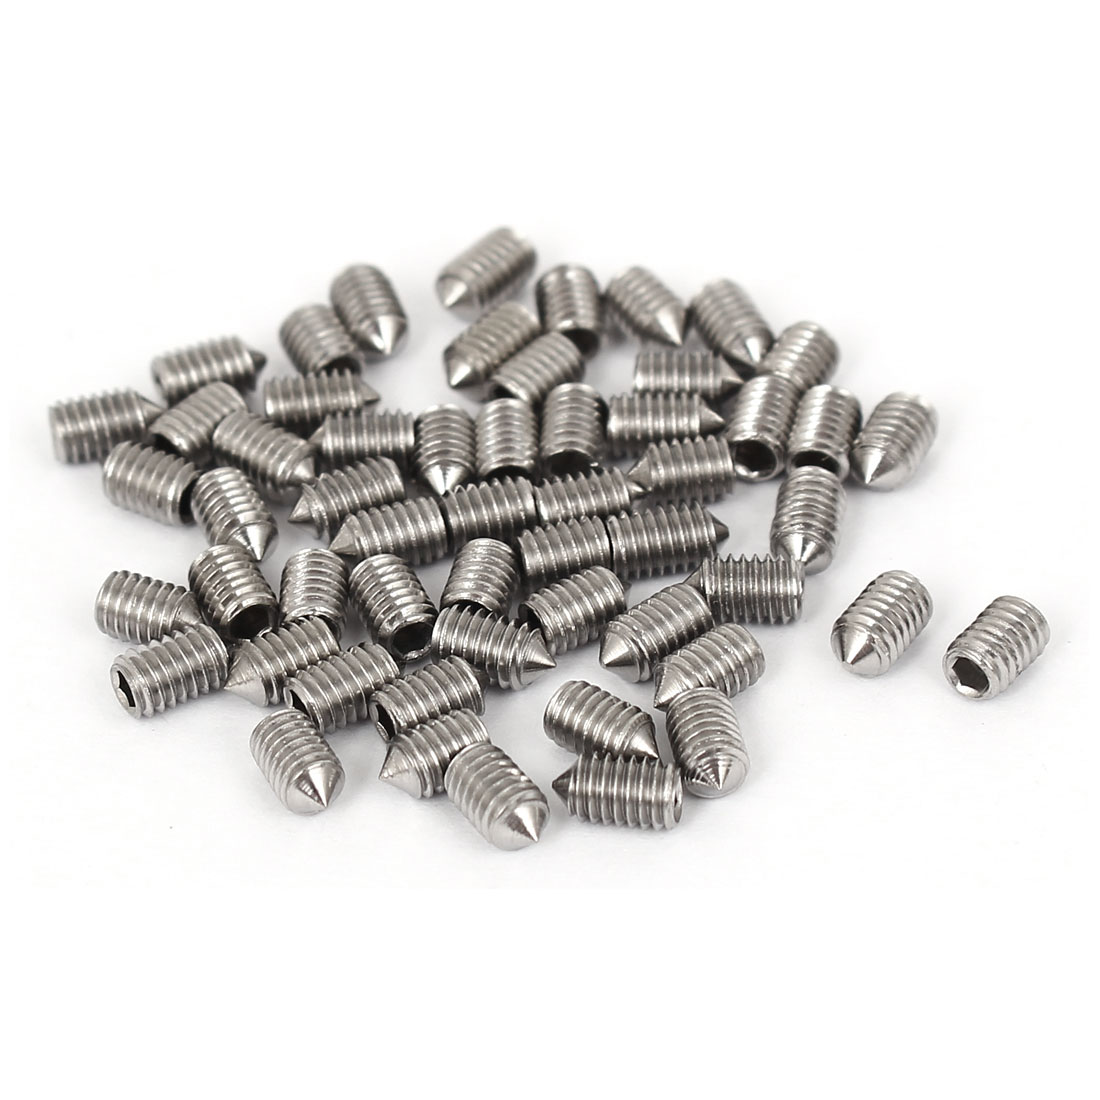 3mm Thread Cone Point Head Socket Hex Set Grub Screws 5mm Length 50 Pcs